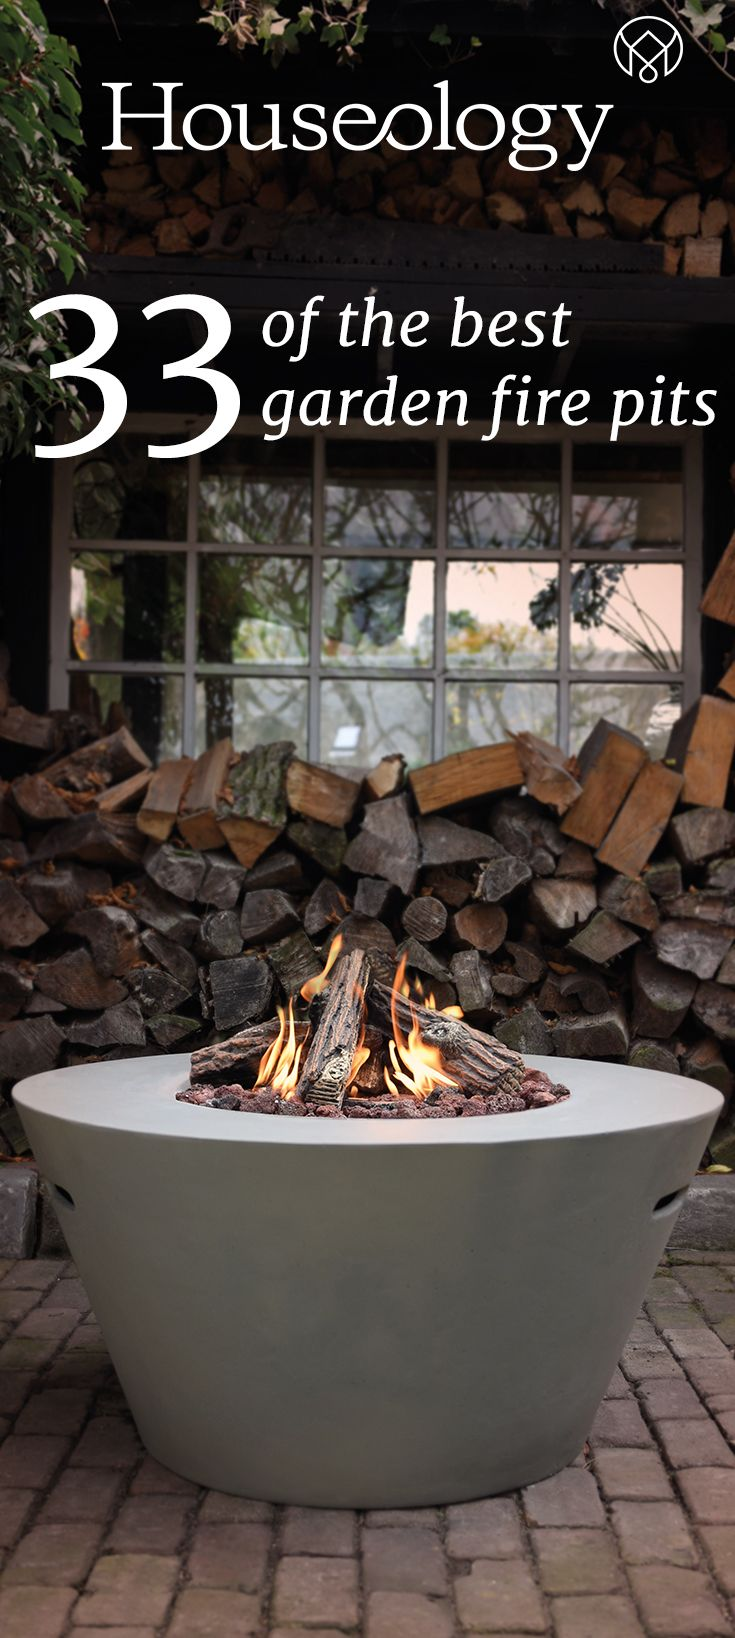 Create a stunning outdoor ambience in your garden space with 33 unmissable fire pits. The perfect garden accessory for summer nights, add a rustic aroma and feel to your outdoor space with the ultimate fire pit.